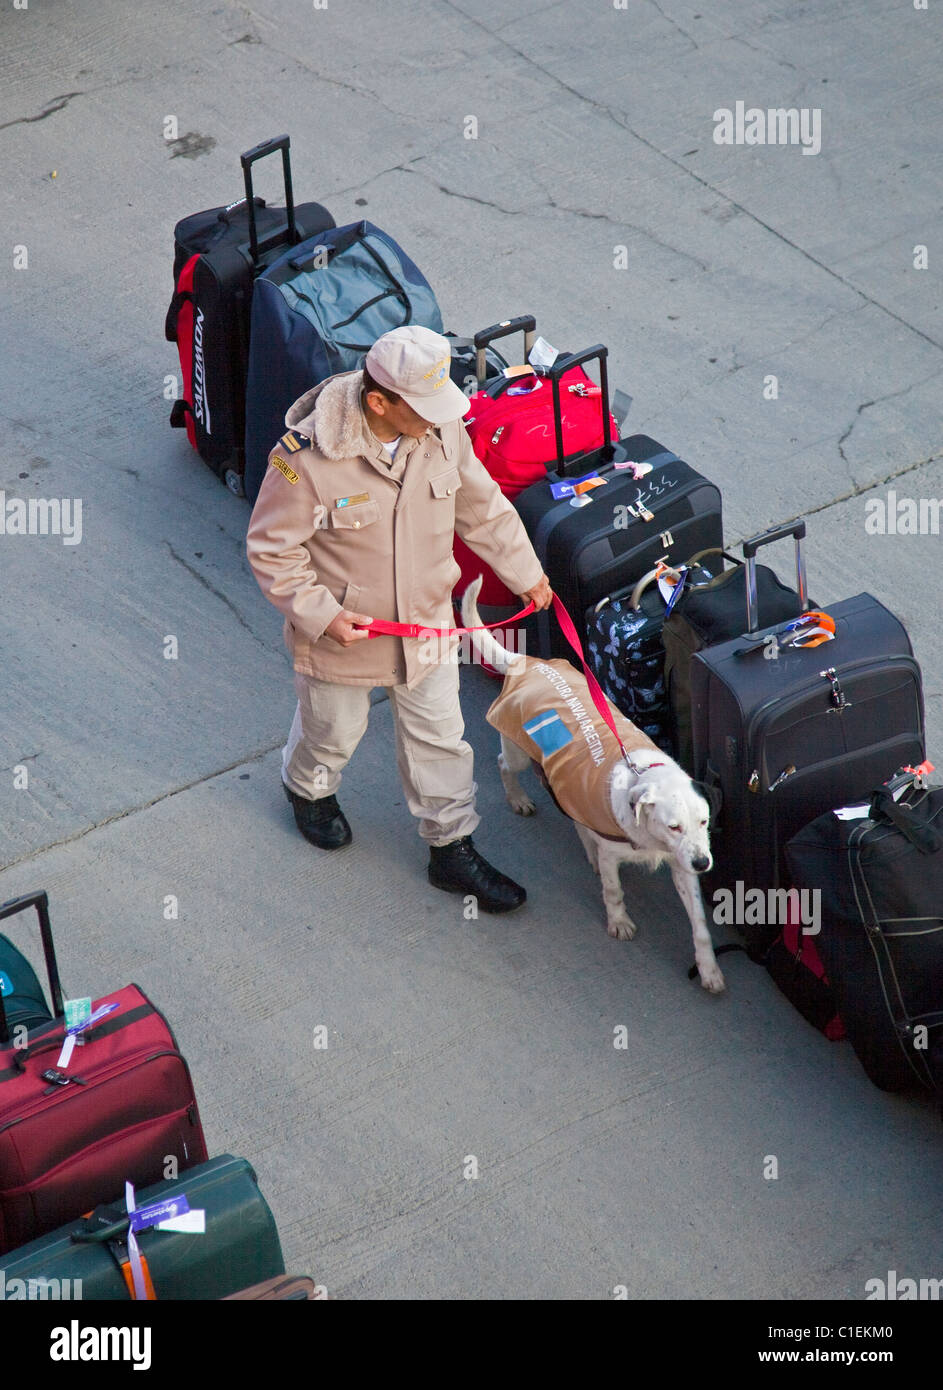 Argentine Customs Officer and Dog checking cruise ship luggage for illegal substances, Ushuaia, Argentina - Stock Image